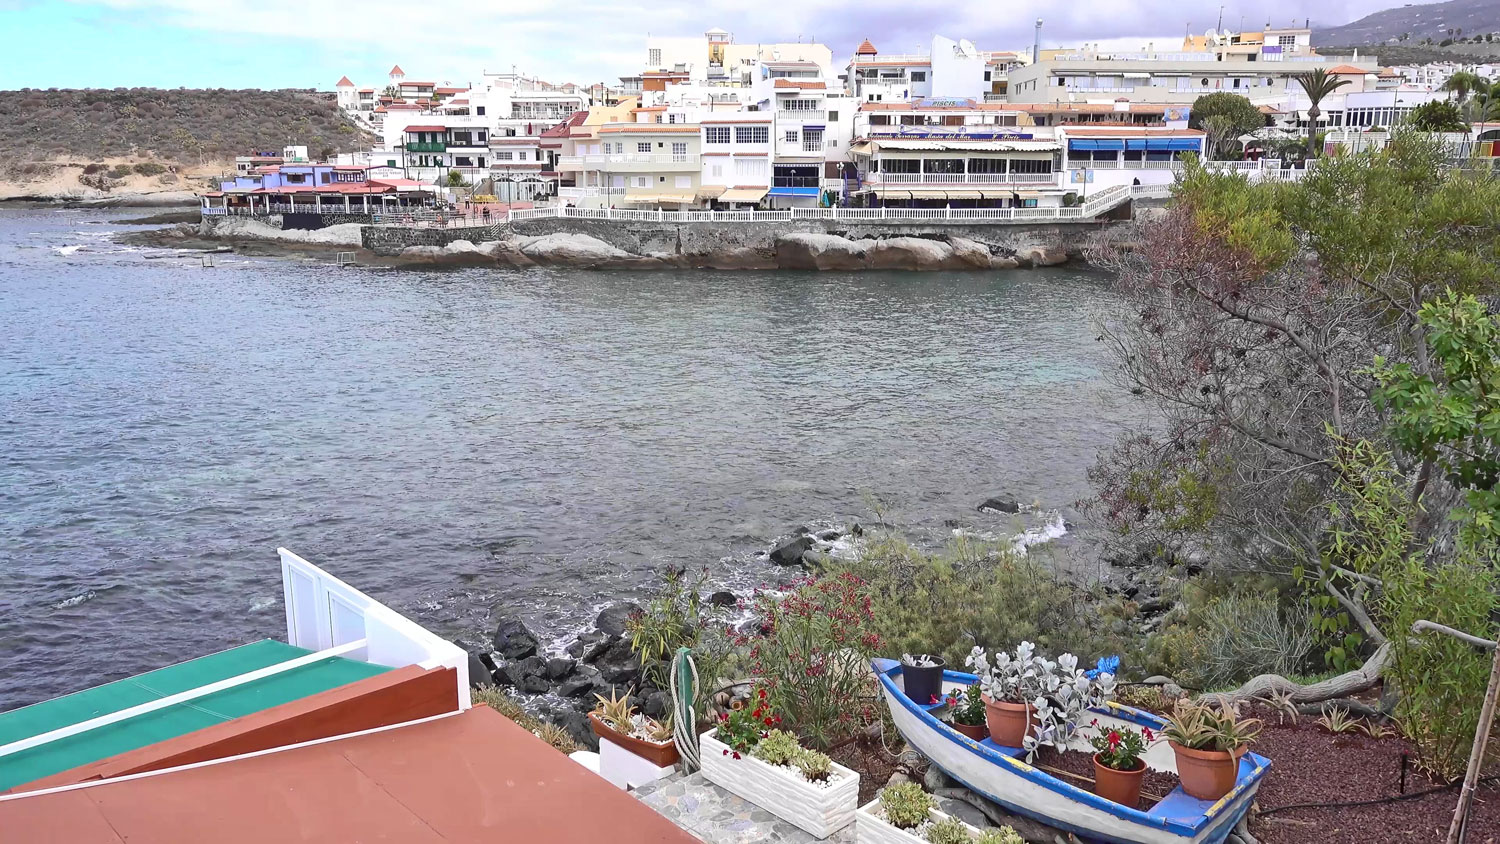 La Caleta, Tenerife, Canary Islands